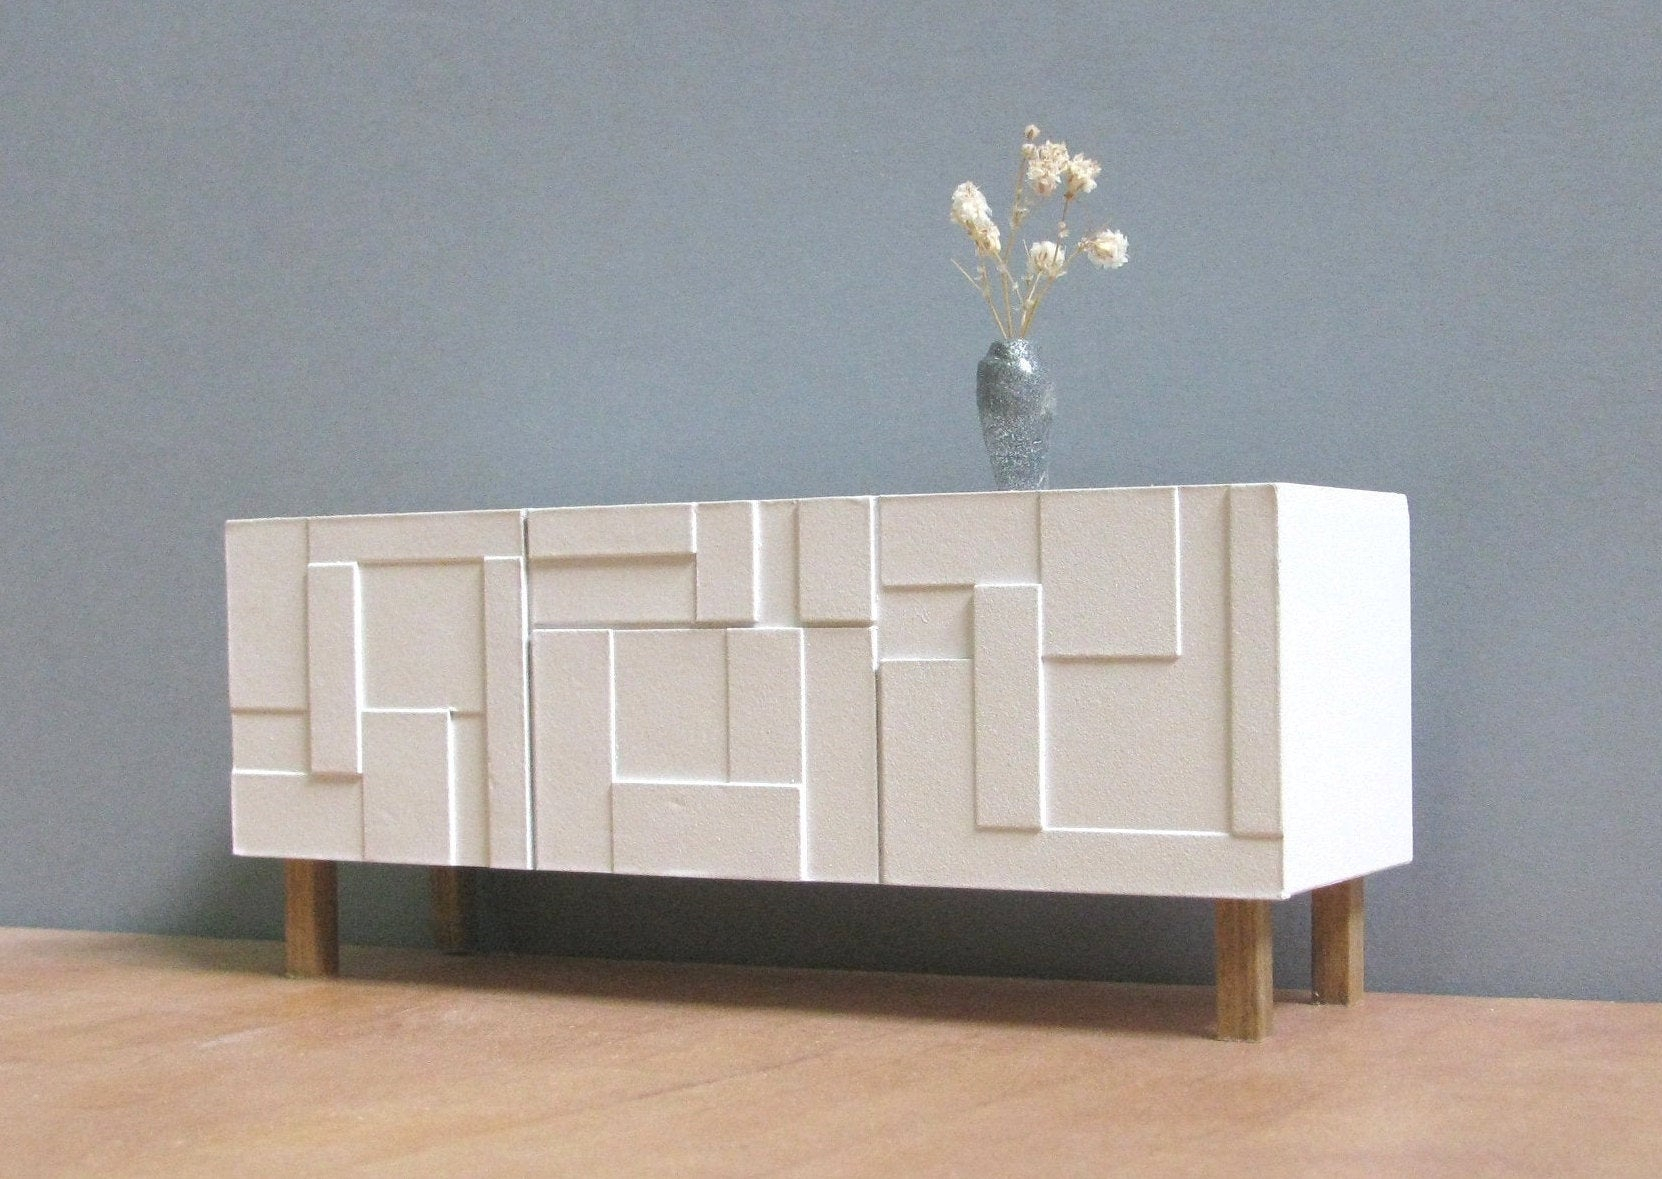 Dollhouse White Sideboard / Credenza, 1/18_1/12 Scale, Handmade Collectable Miniature Furniture, Modern Style Decor, Contemporary Design Intended For Floral Beauty Credenzas (Gallery 19 of 30)